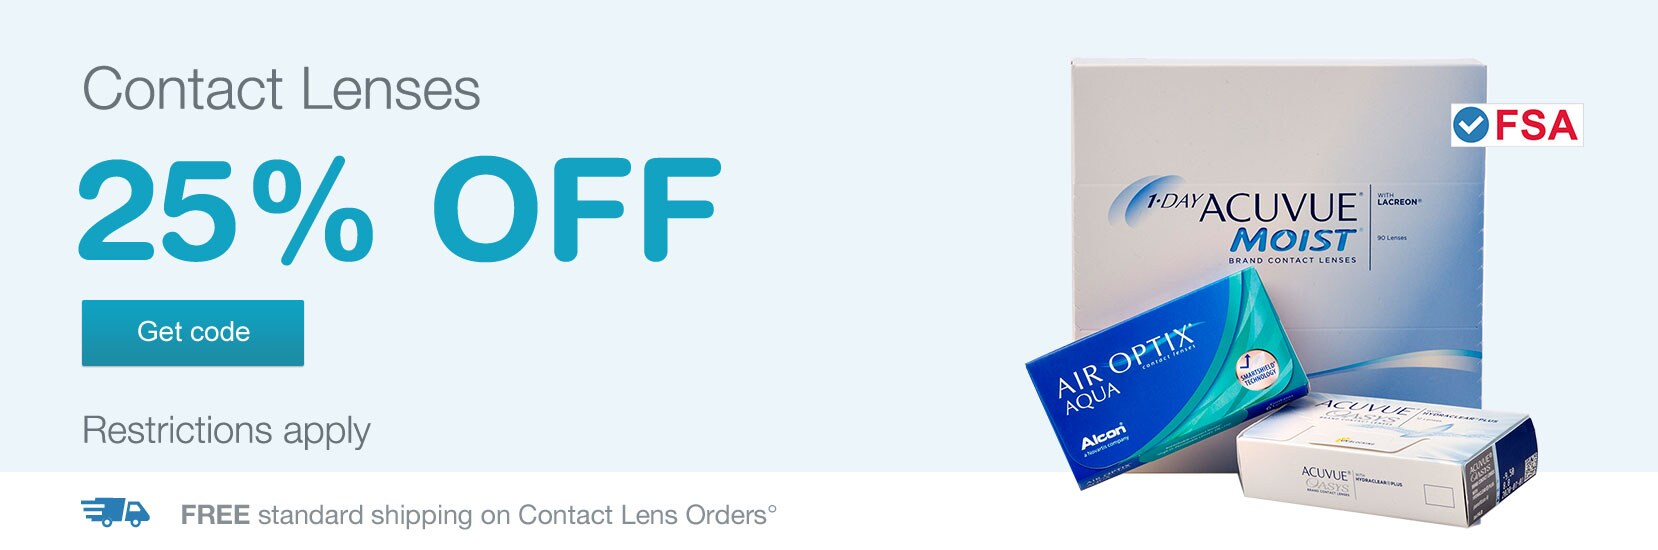 FSA approved. Contact Lenses 25% OFF. Restrictions apply. Free standard shipping on Contact Lens Orders.° Get code.